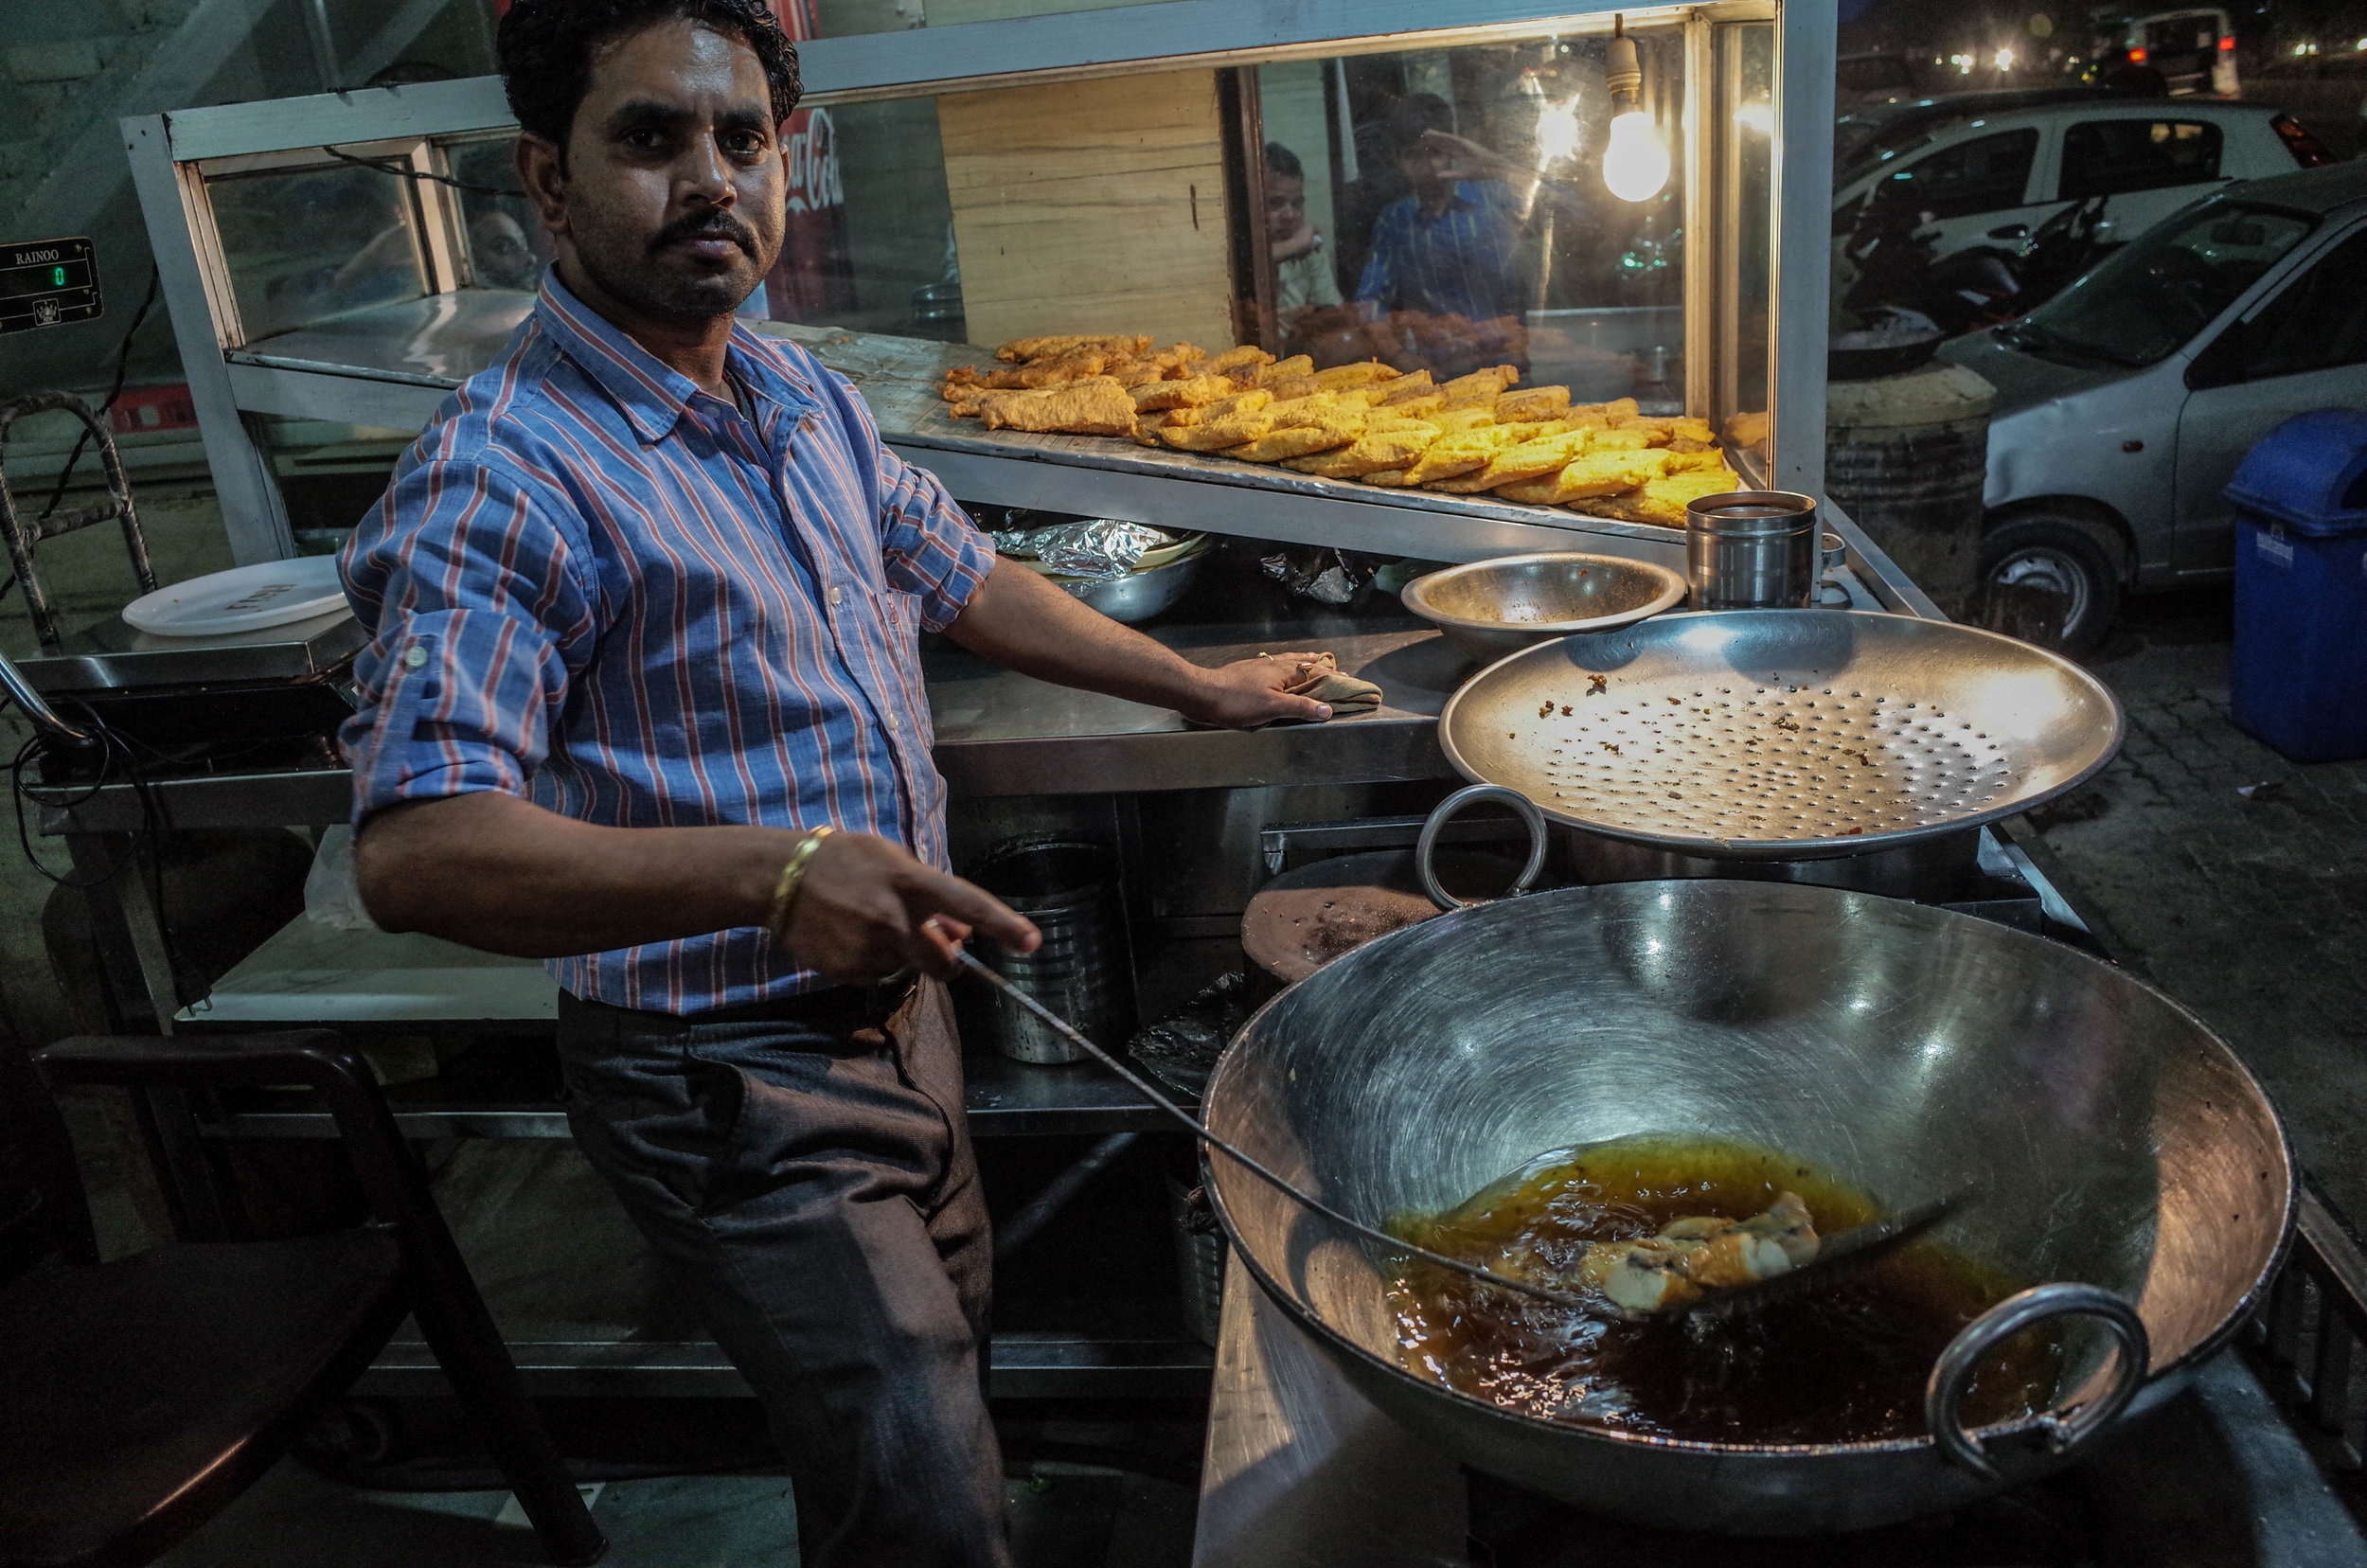 Amrtisari macchi is sold on street corners all over Punjab. The ajwain in the batter gives the dish an unmistakable, complex flavour.